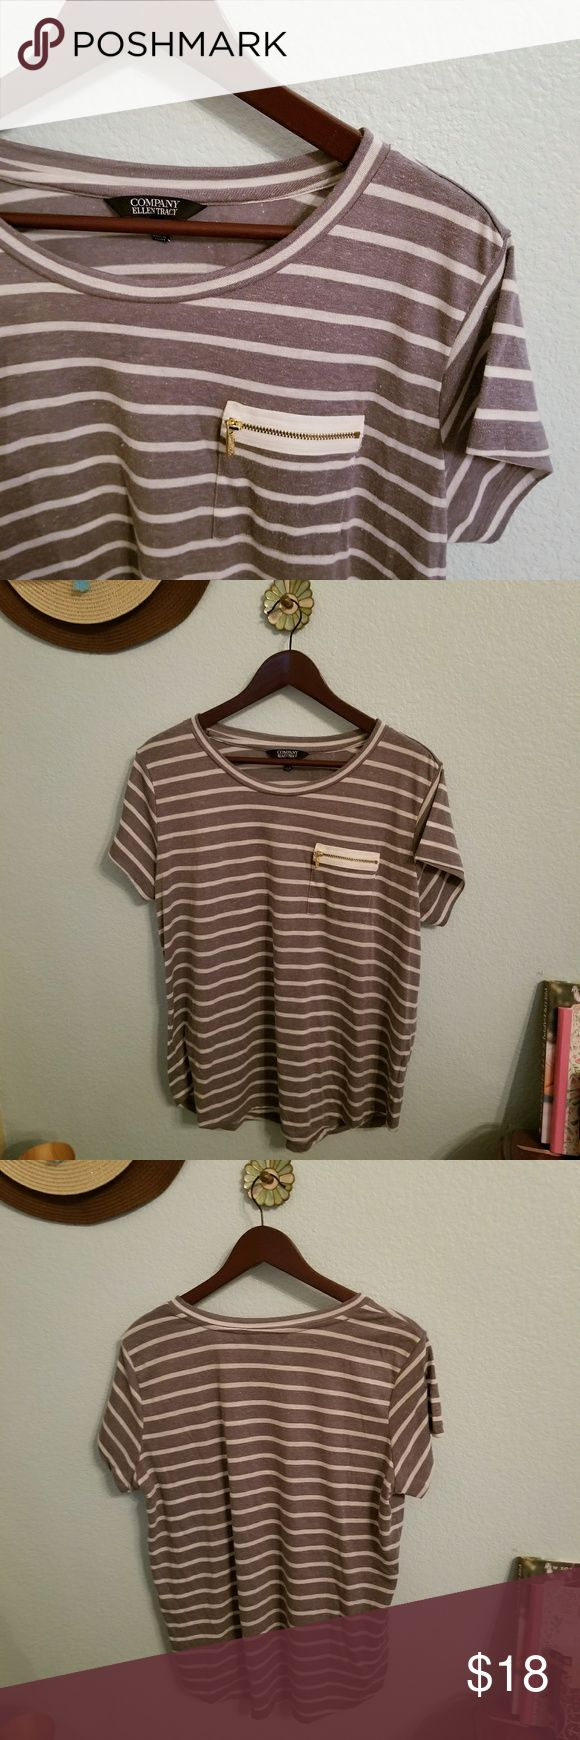 Ellen Tracy Striped Top Ellen Tracy heathered Grey & White striped short sleeve top with zippered pocket. 90% polyester 10% linen. Gently used. Ellen Tracy Tops